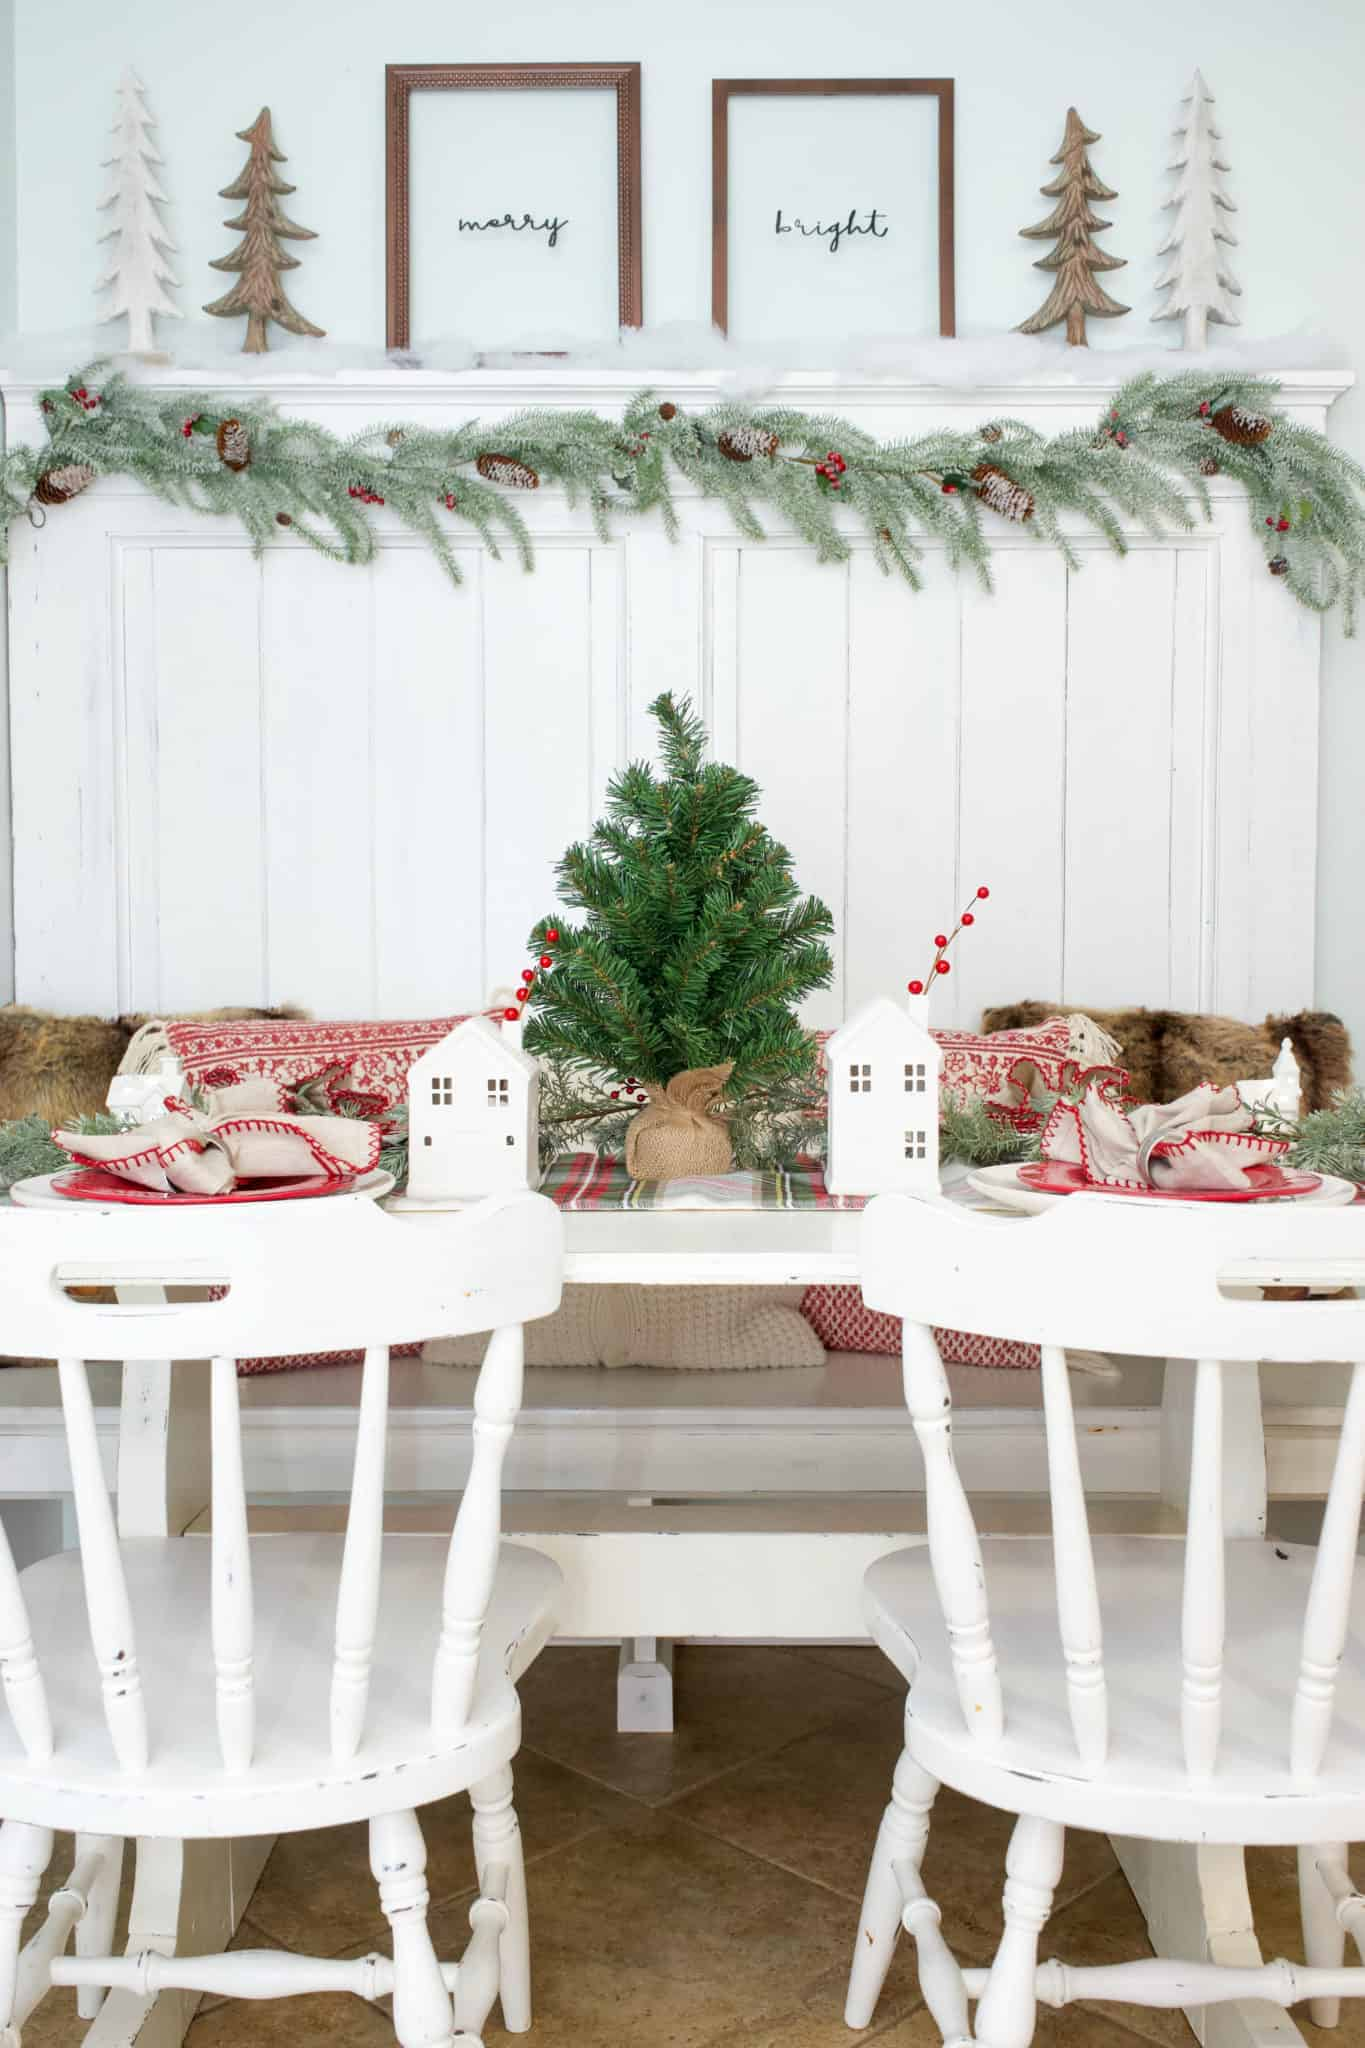 I've decked my home for the holidays. My simple Christmas kitchen decor is a mix of rustic and traditional elements.